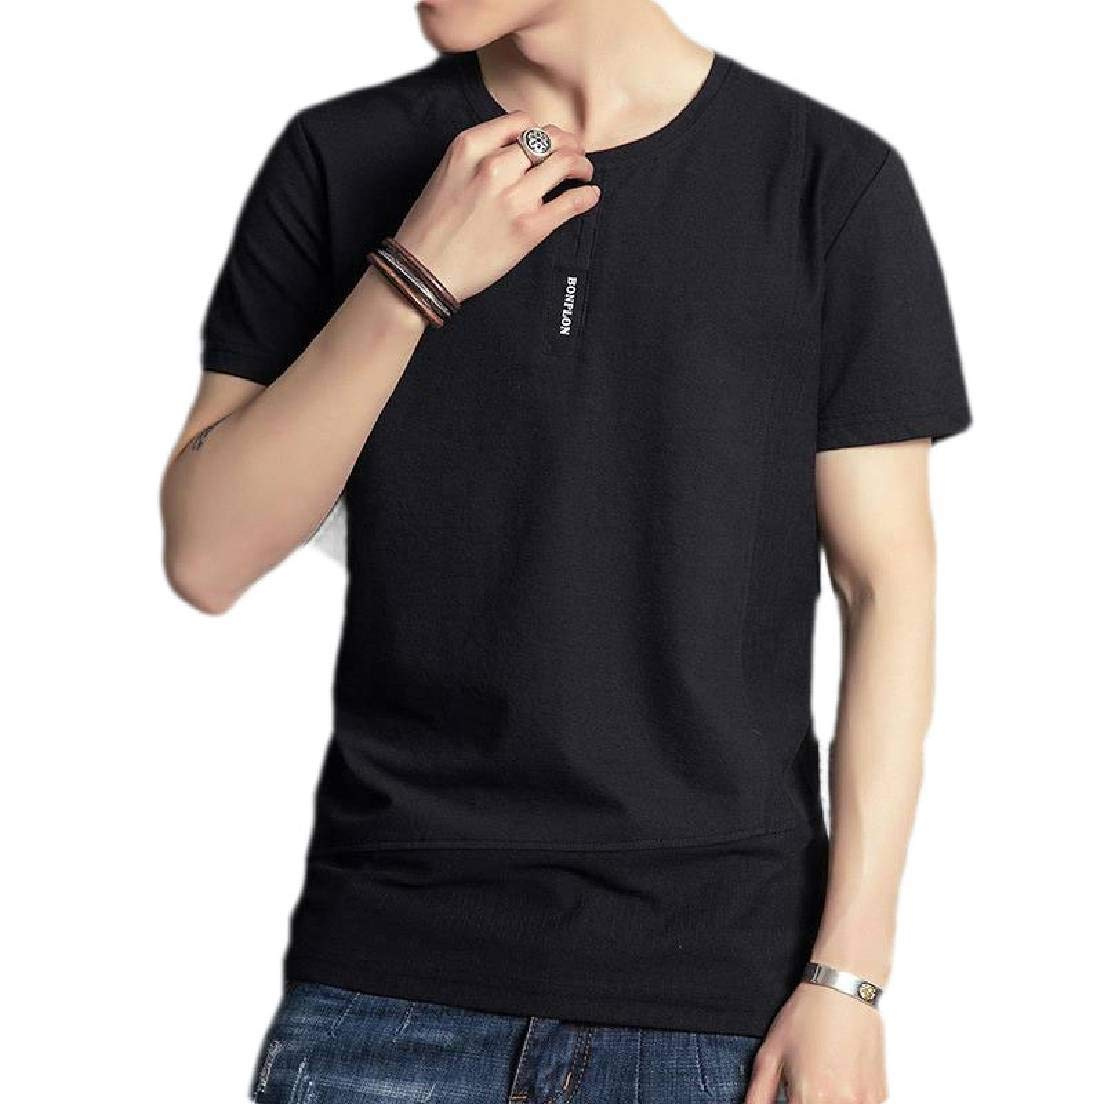 BU2H Men Round Neck Slim Fit Solid Short Sleeve Big /& Tall Tee T-Shirts